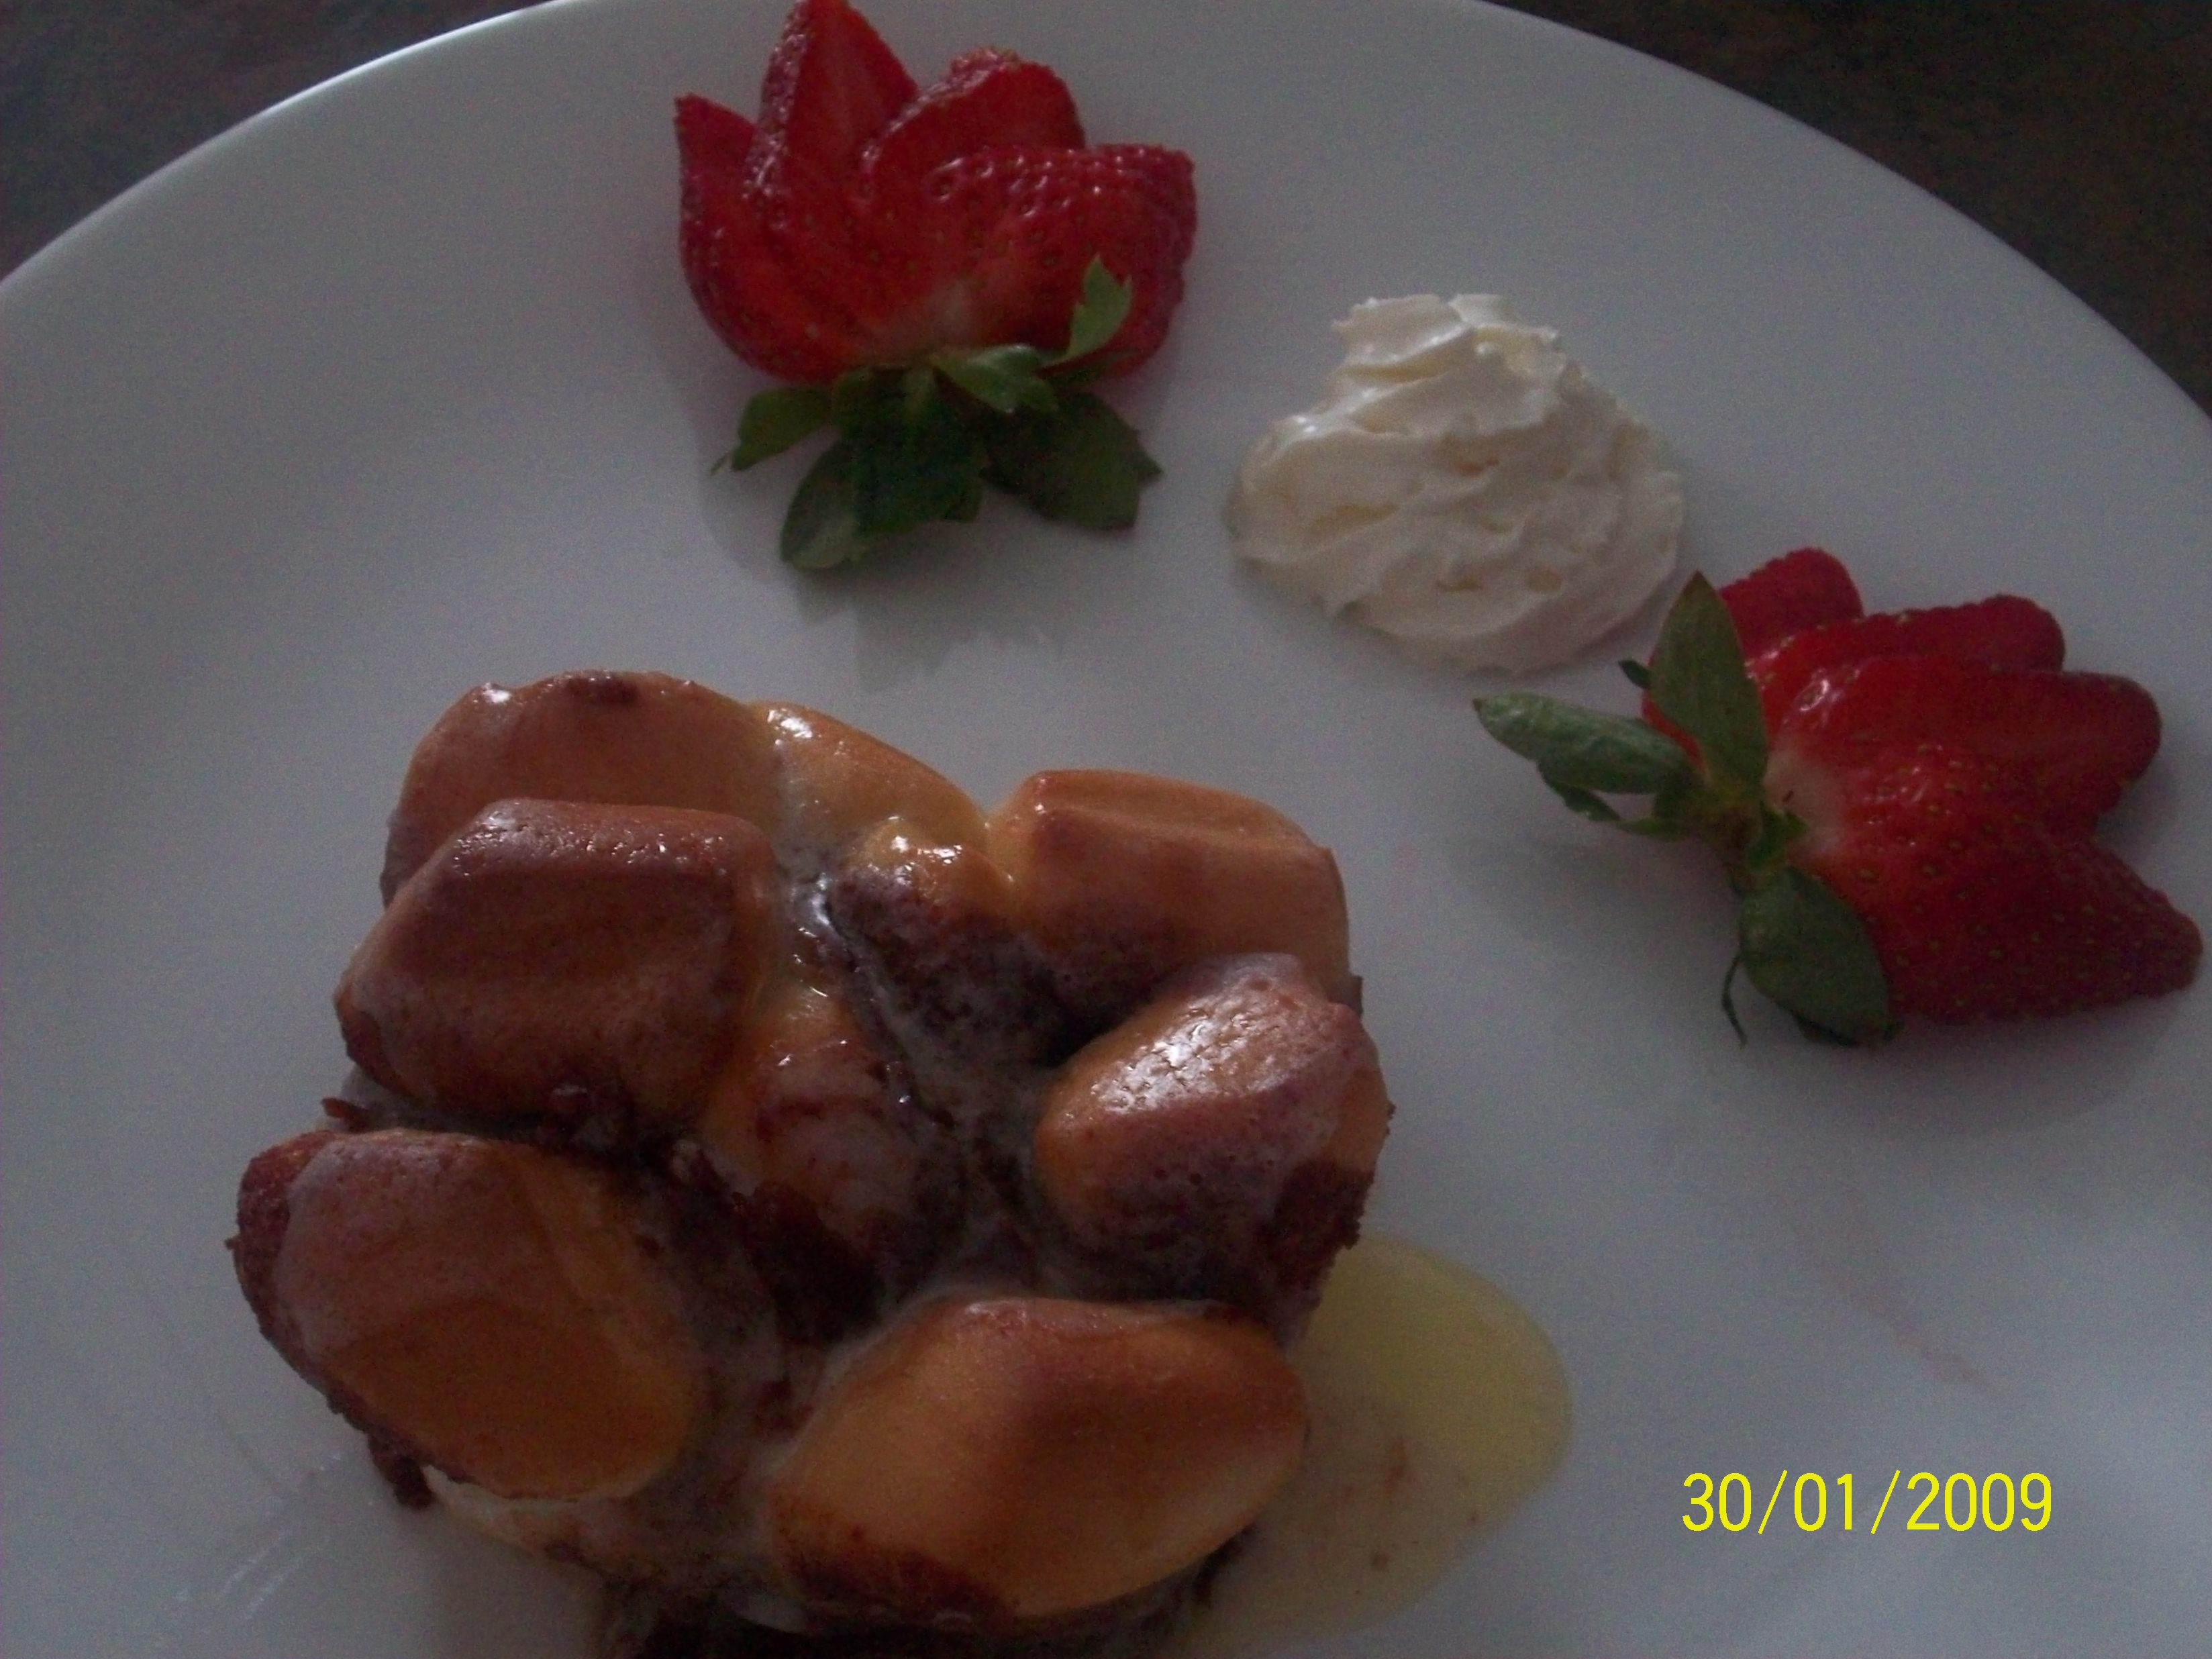 https://foodloader.net/cutie_2009-01-30_Cinnamon_with_Strawberries_and_Cream.jpg